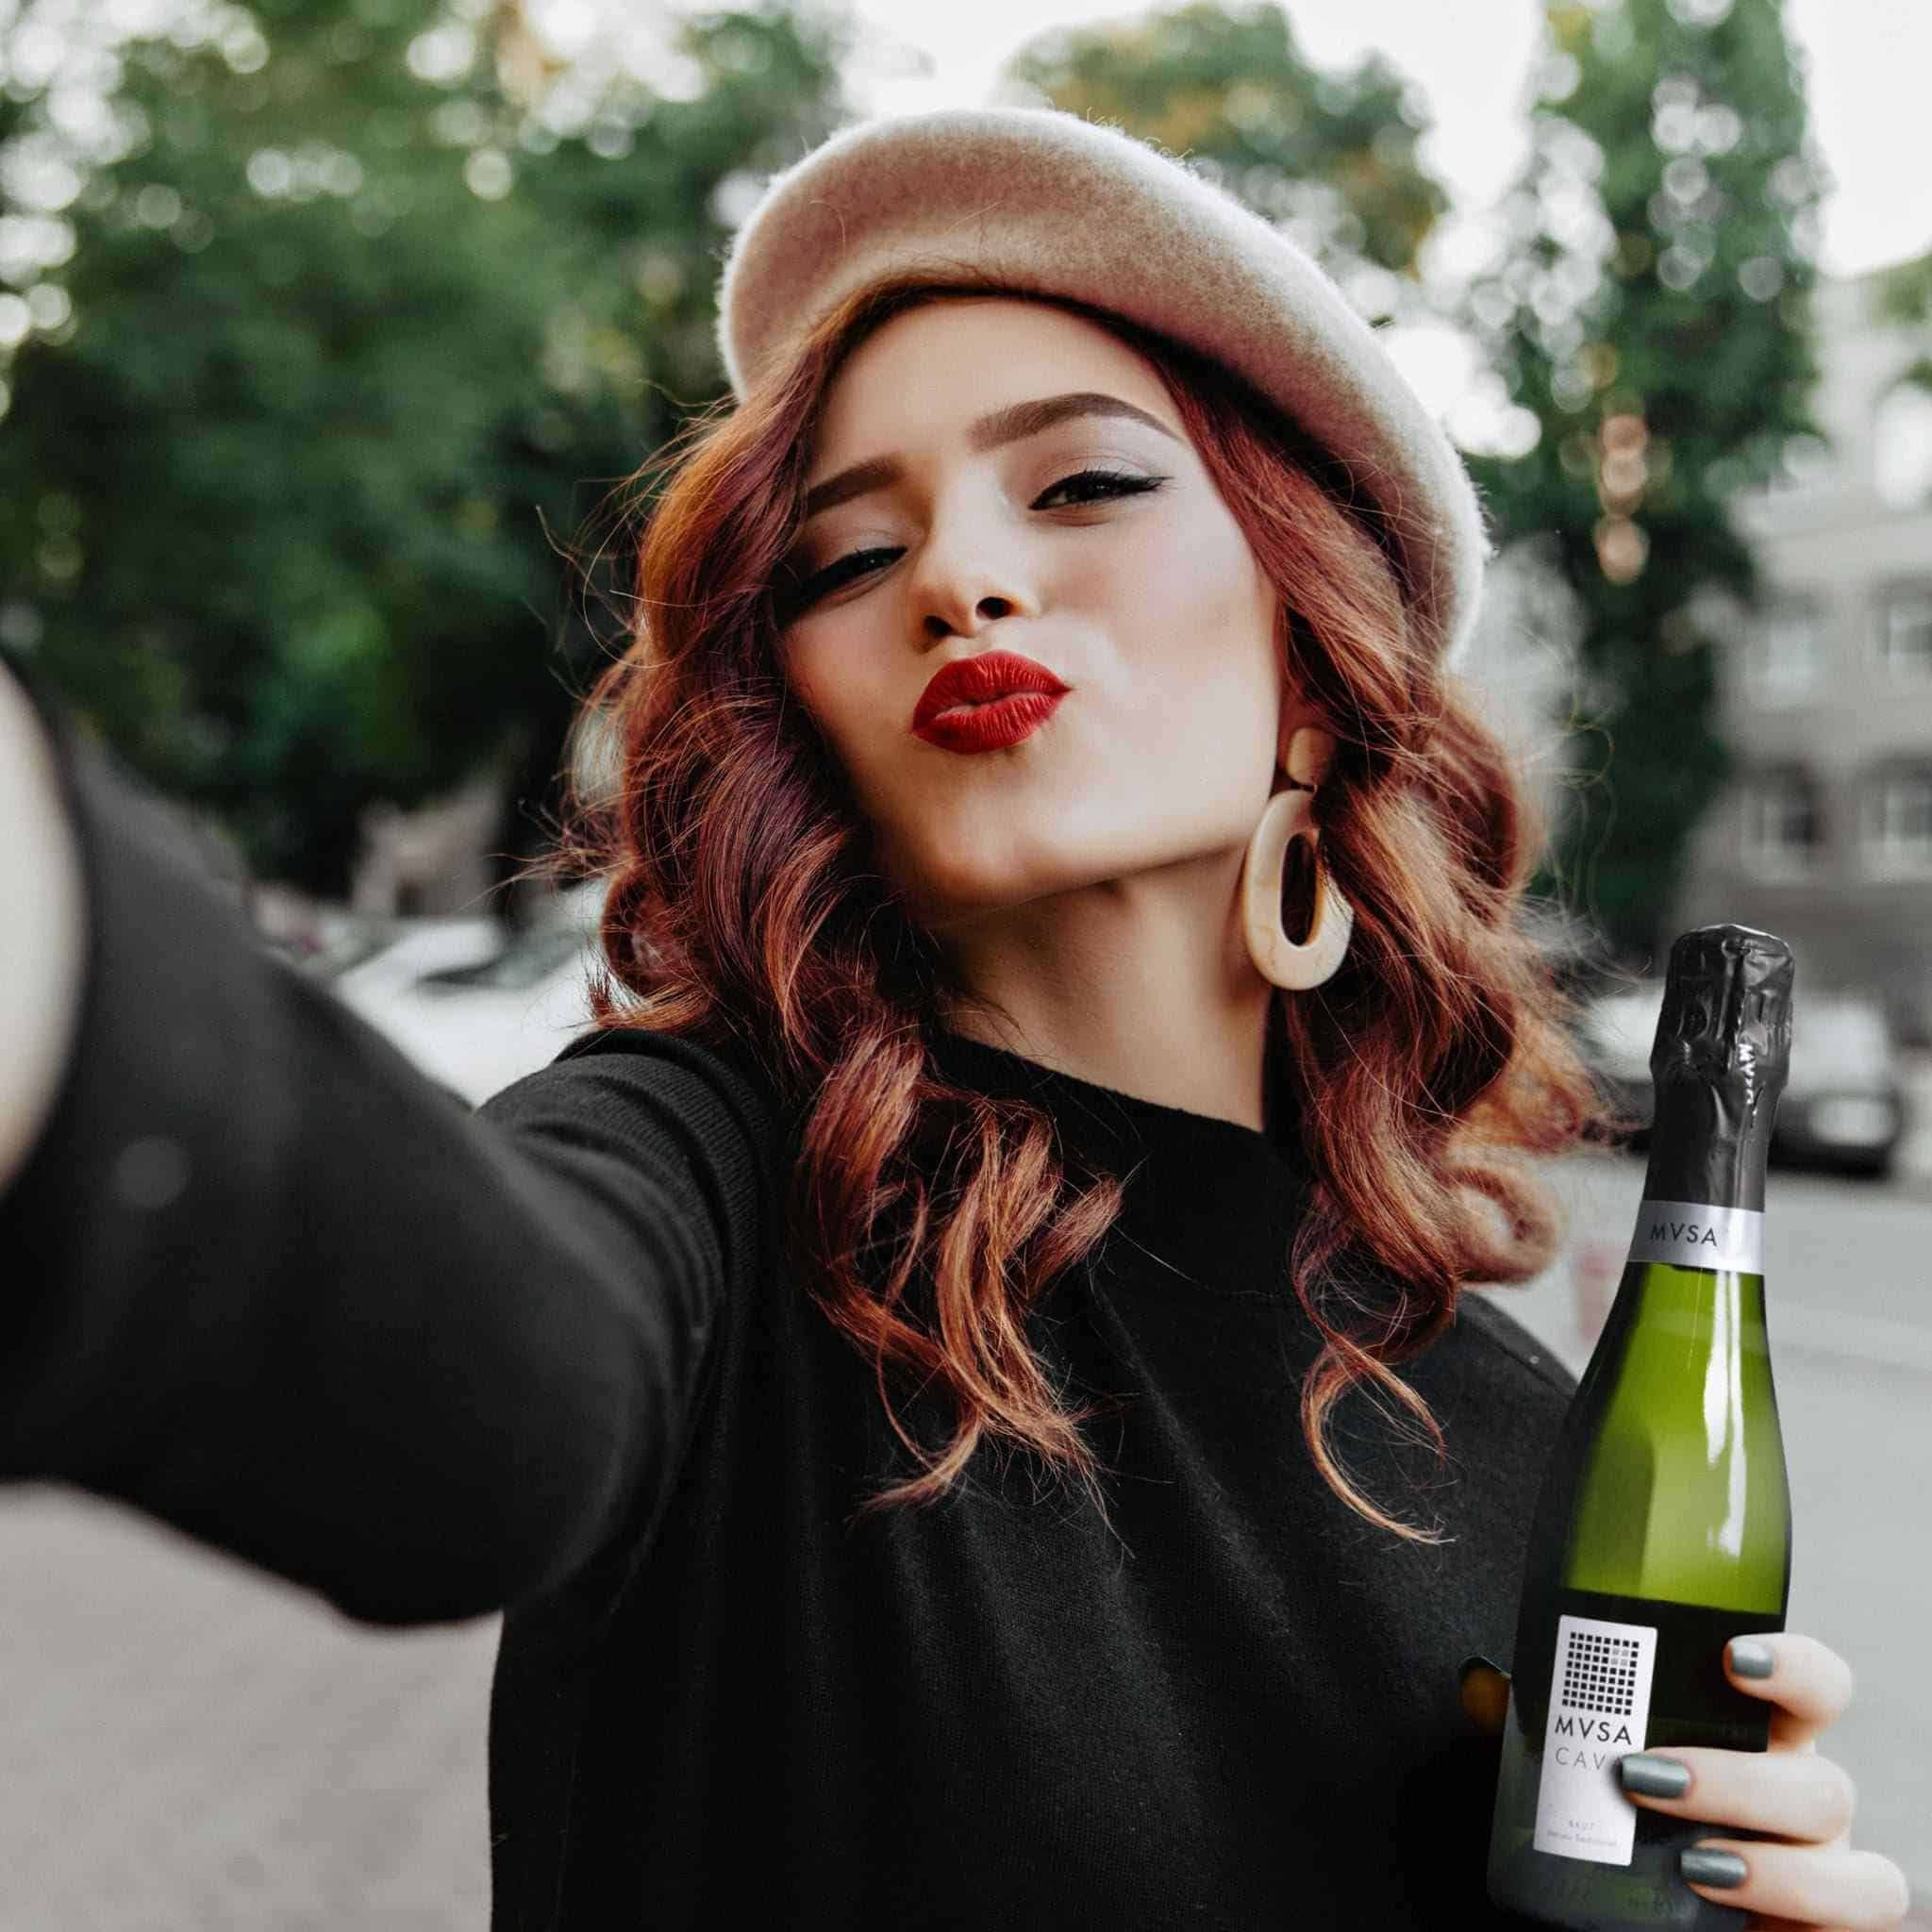 Photo of a girl and a bottle of MVSA Cava by Supermoon